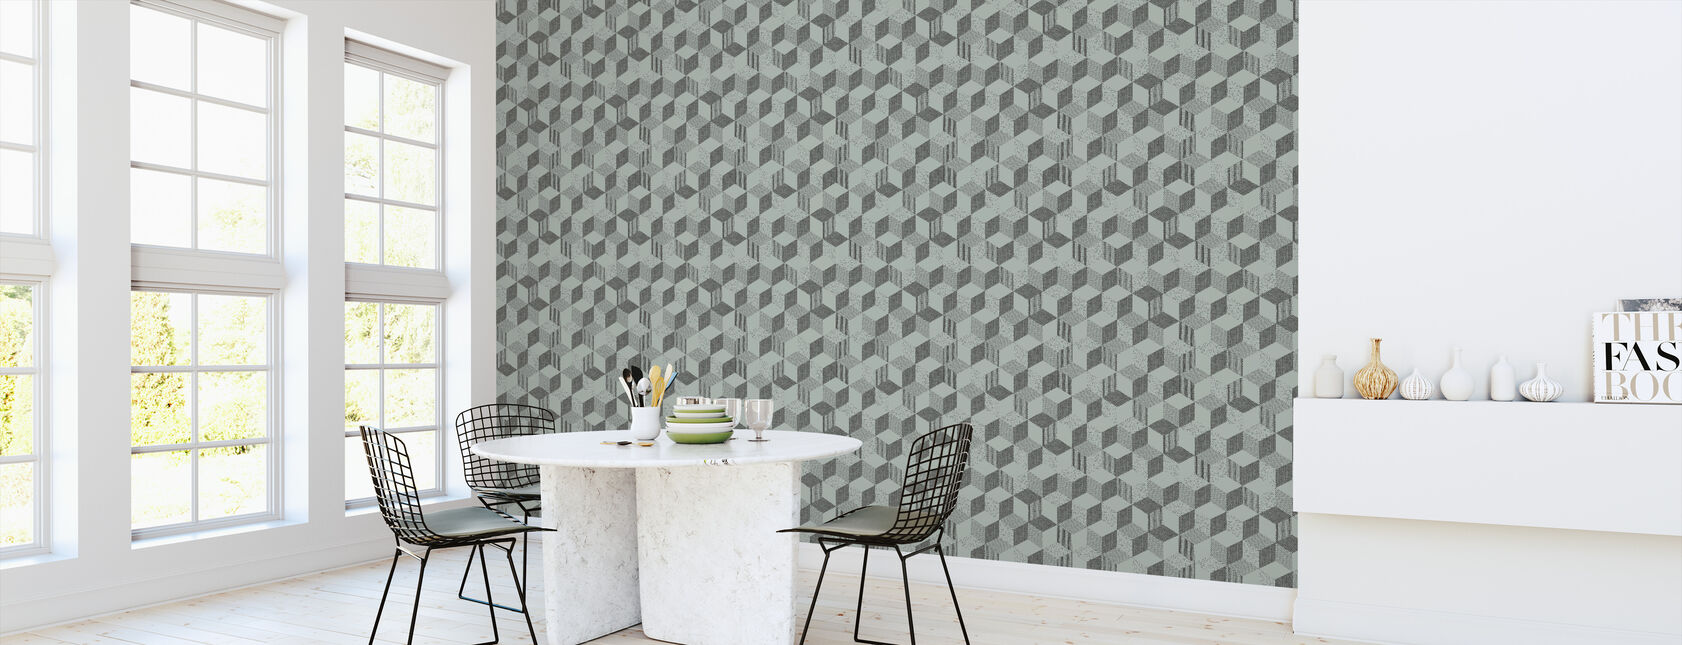 Kitchen wallpaper and dining room inspiration